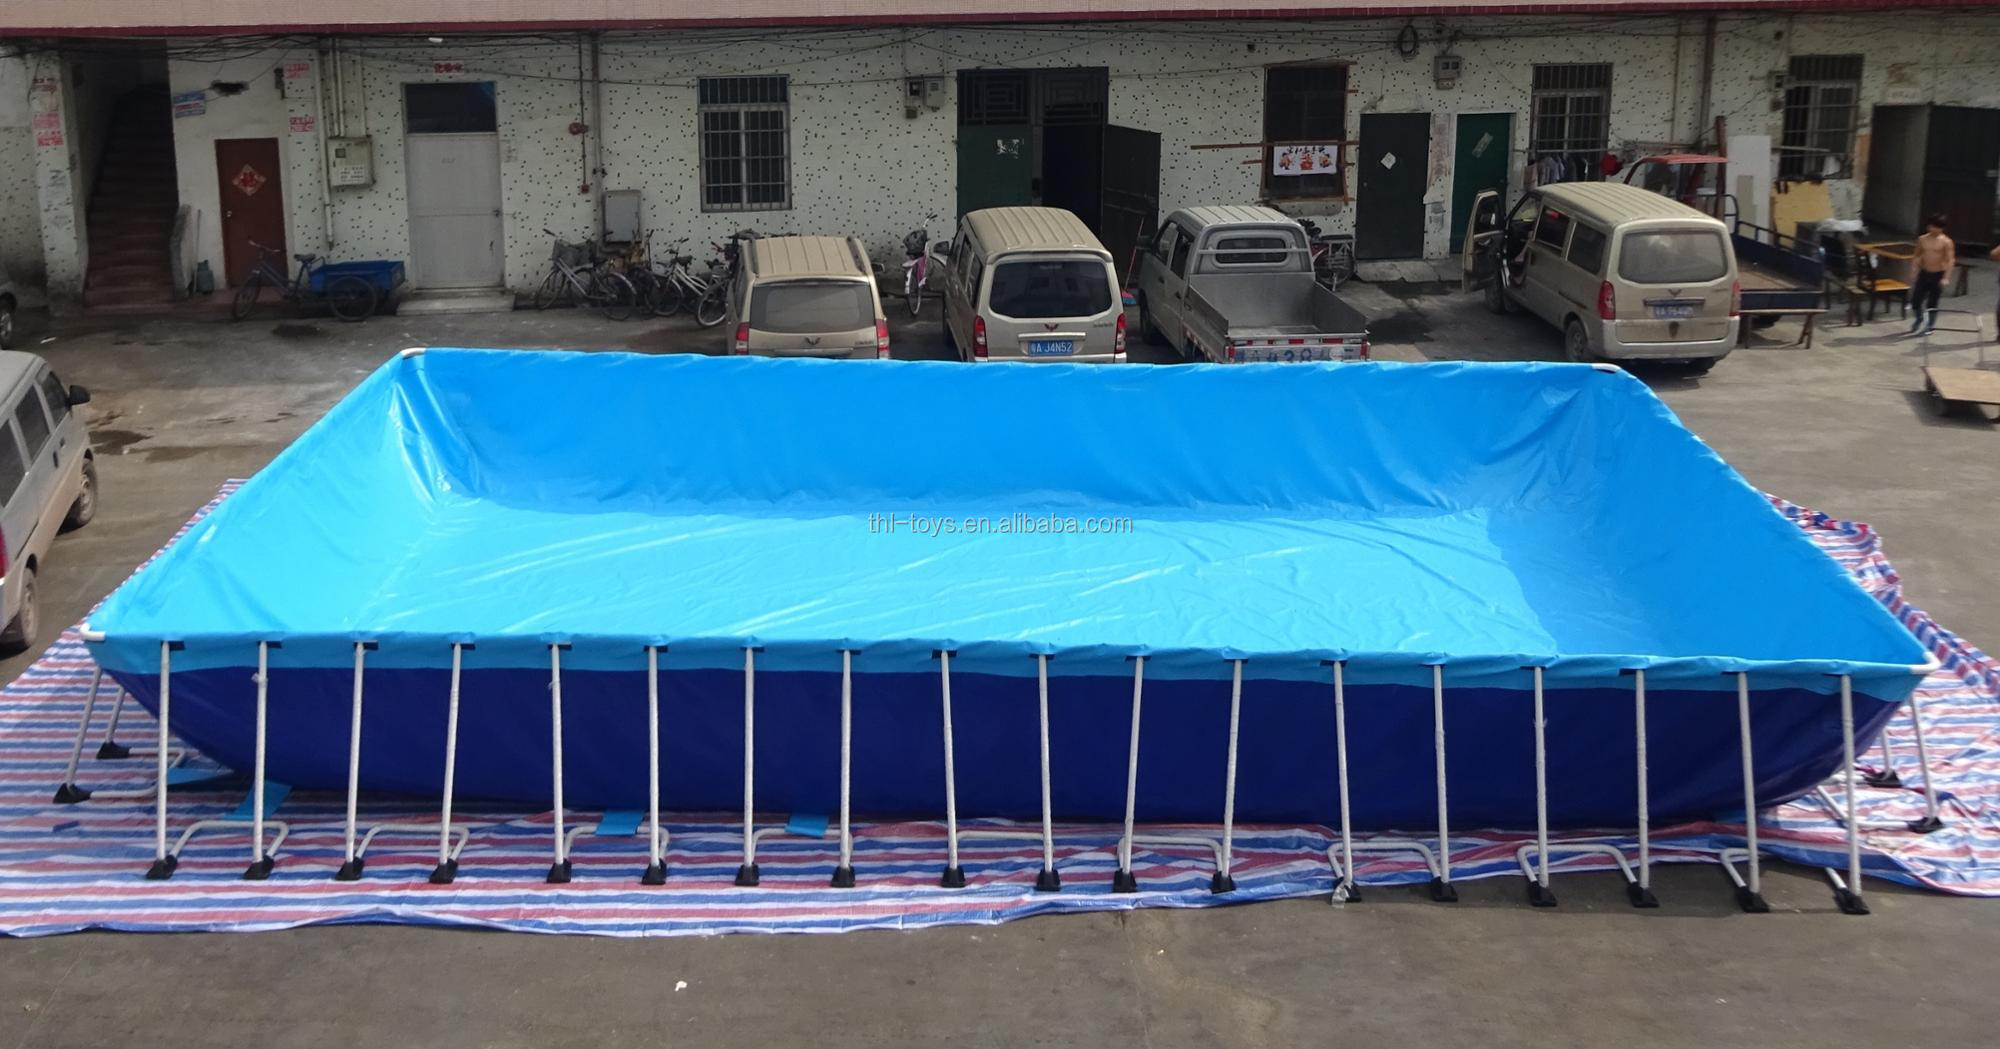 Portable metal frame swimming pool/used swimming pool for sale